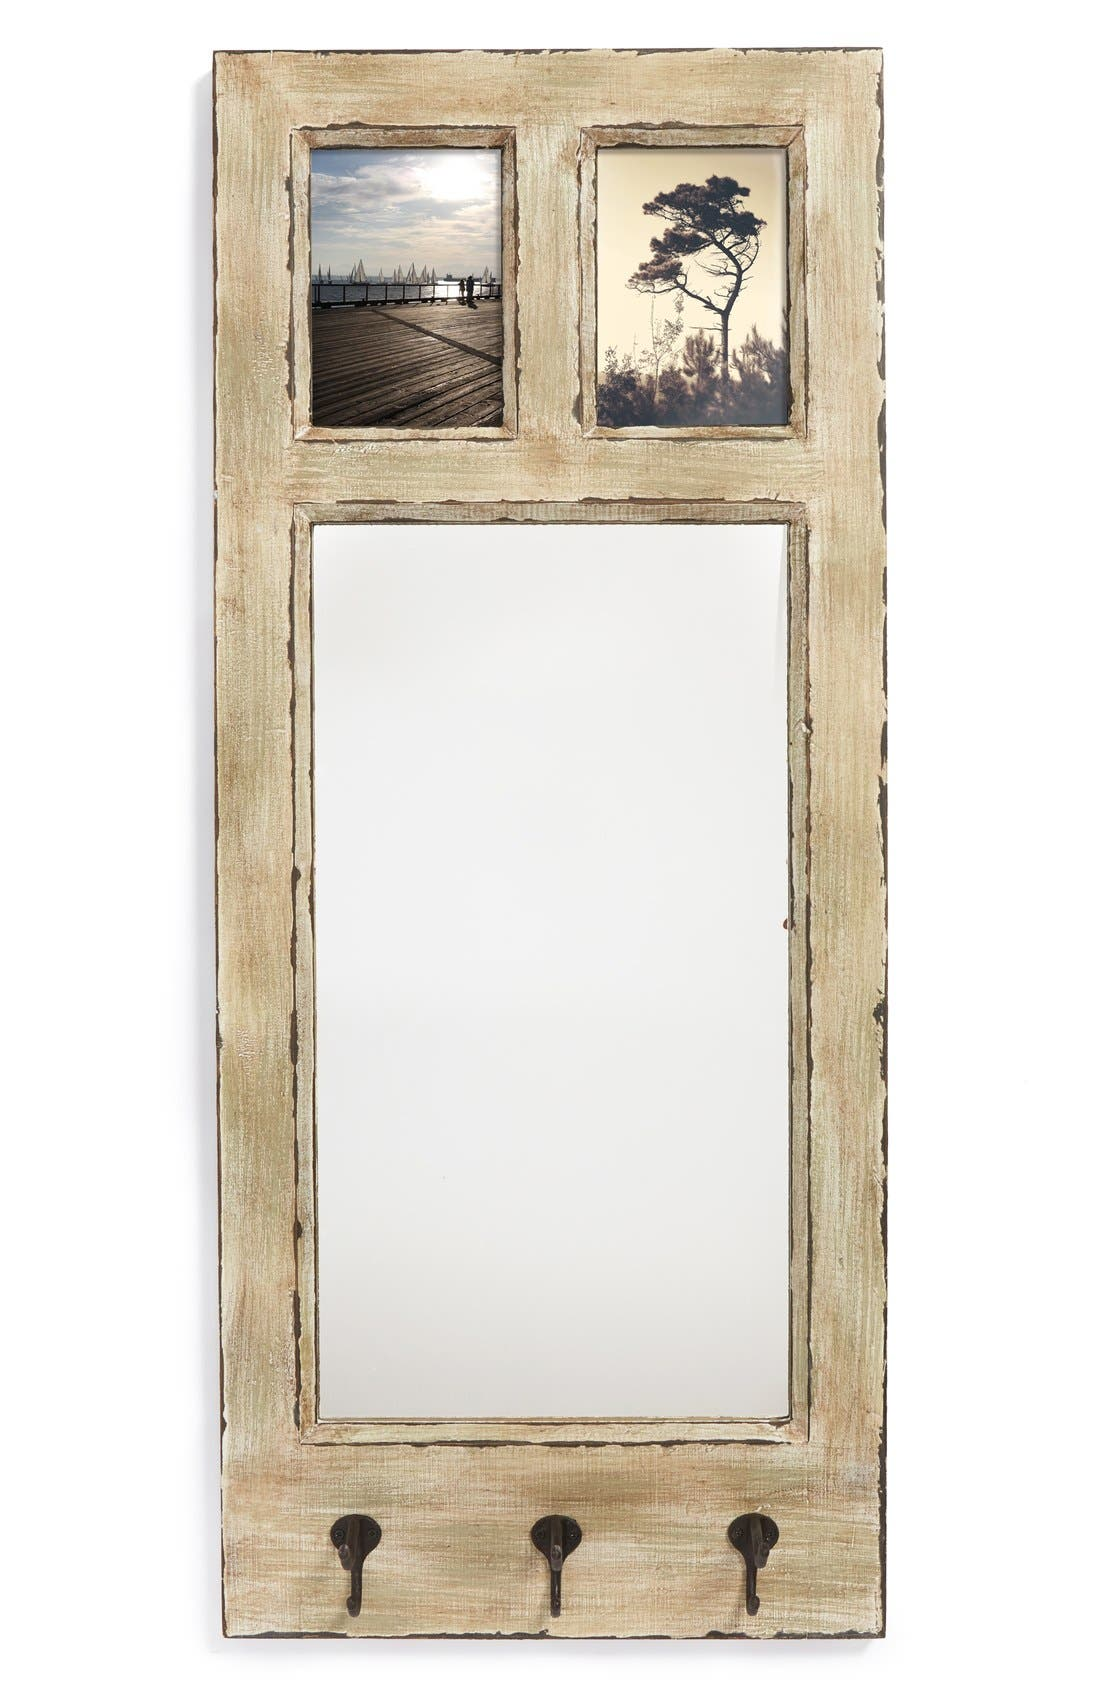 Alternate Image 1 Selected - Creative Co-Op Wooden Wall Mirror, Picture Frame & Hooks